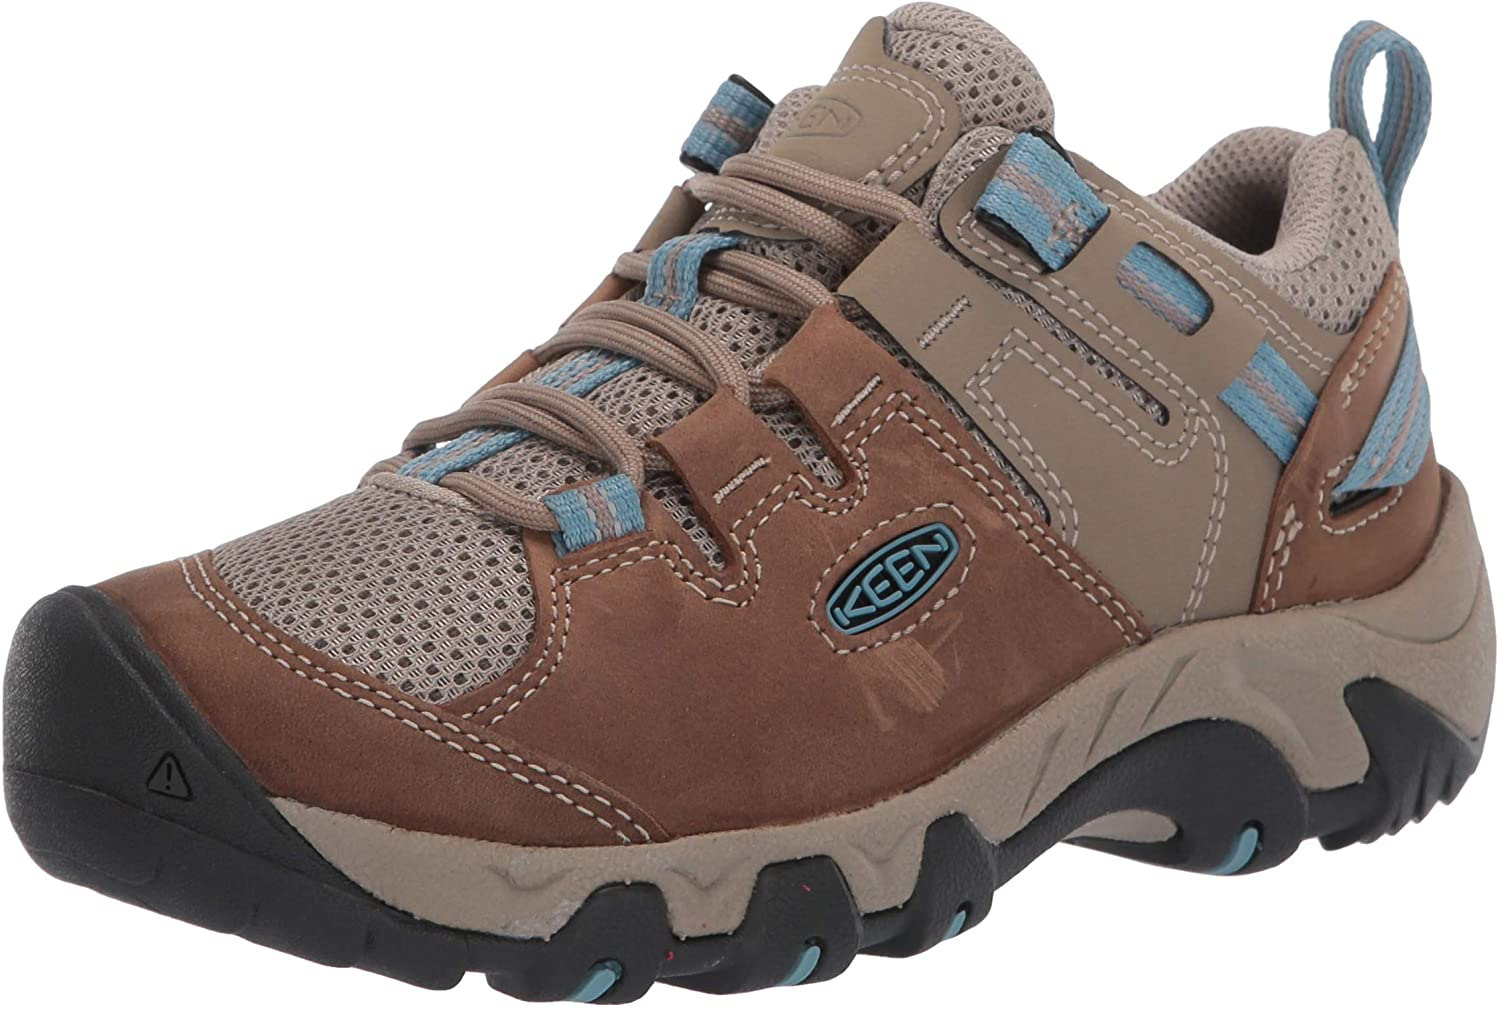 KEEN Women's Steens Vent Hiking Shoe